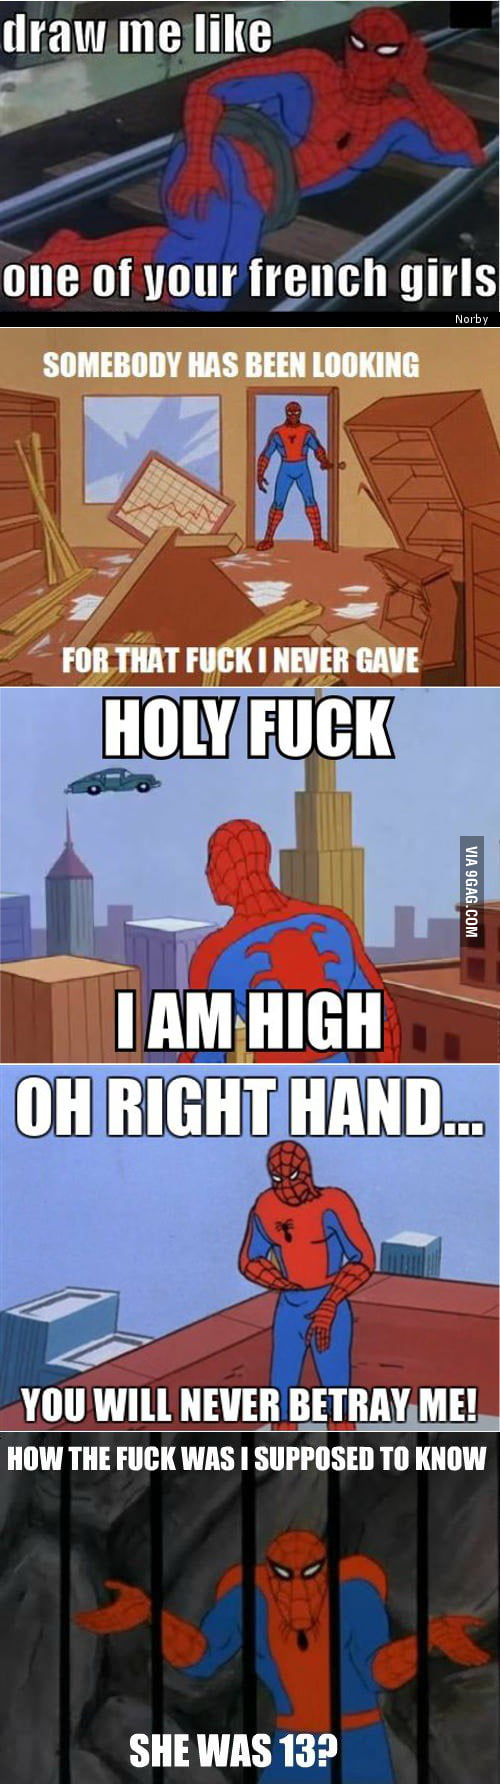 Just Spidey, who else